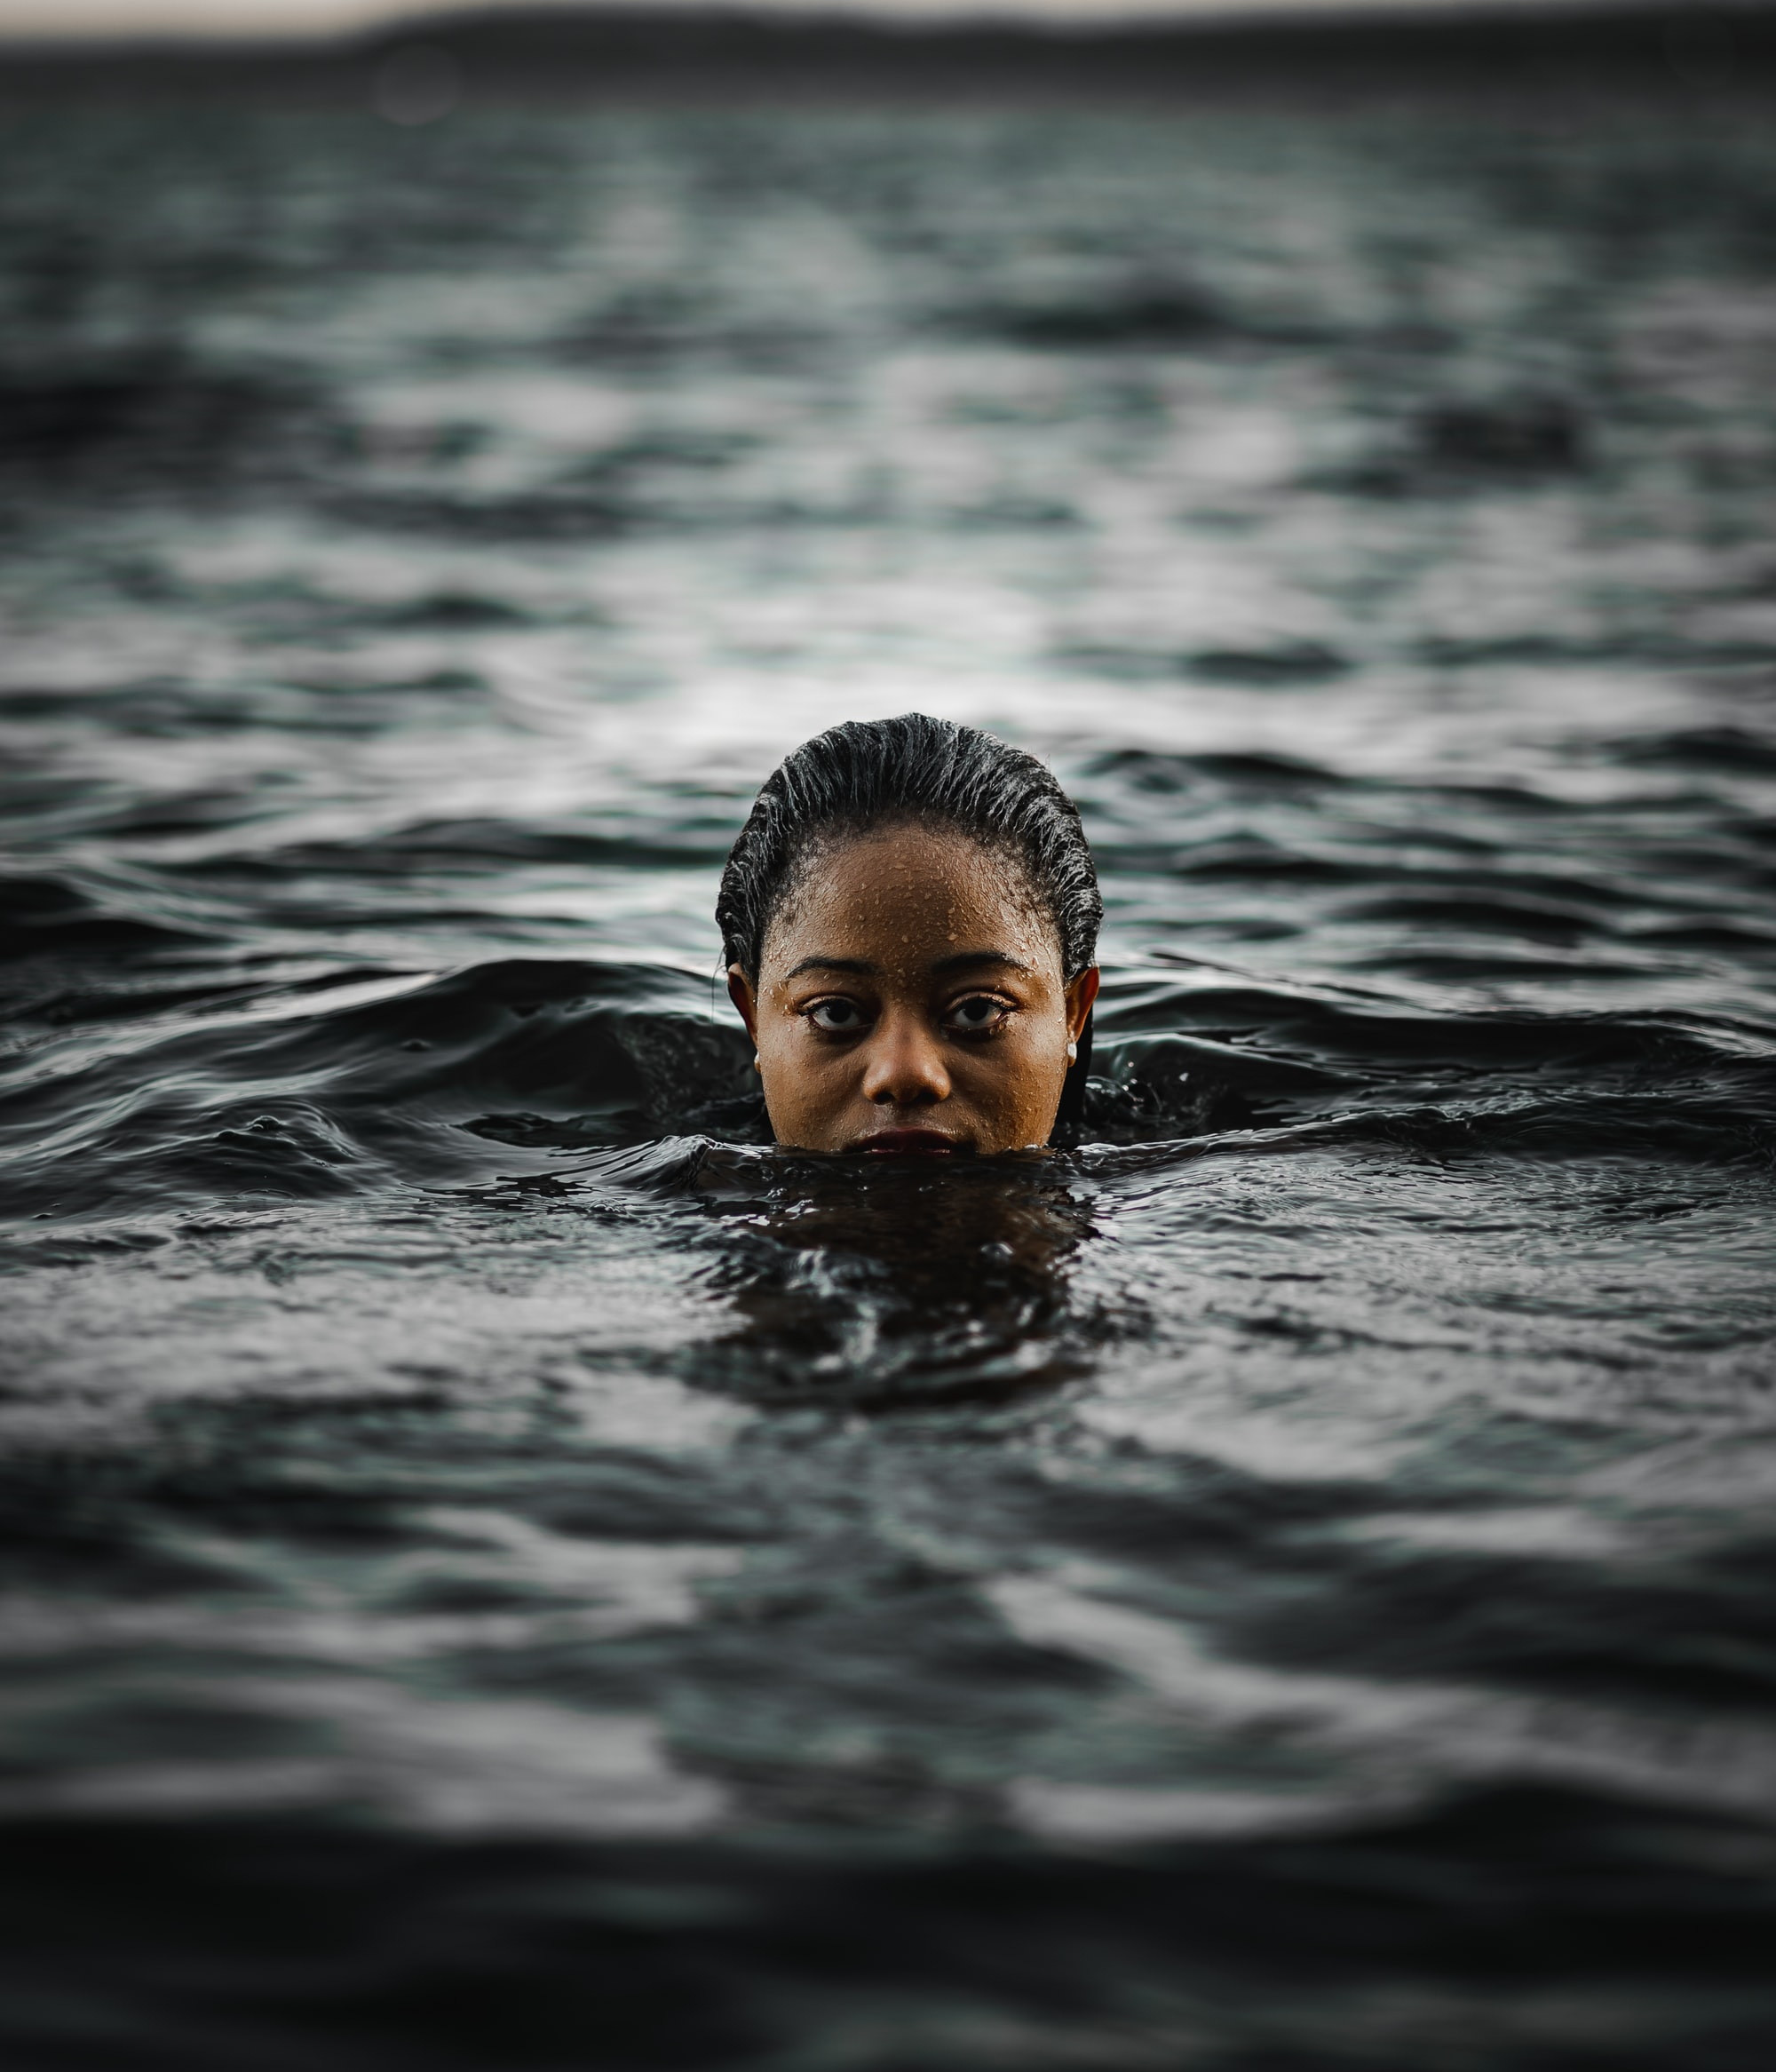 Are you sinking or swimming?